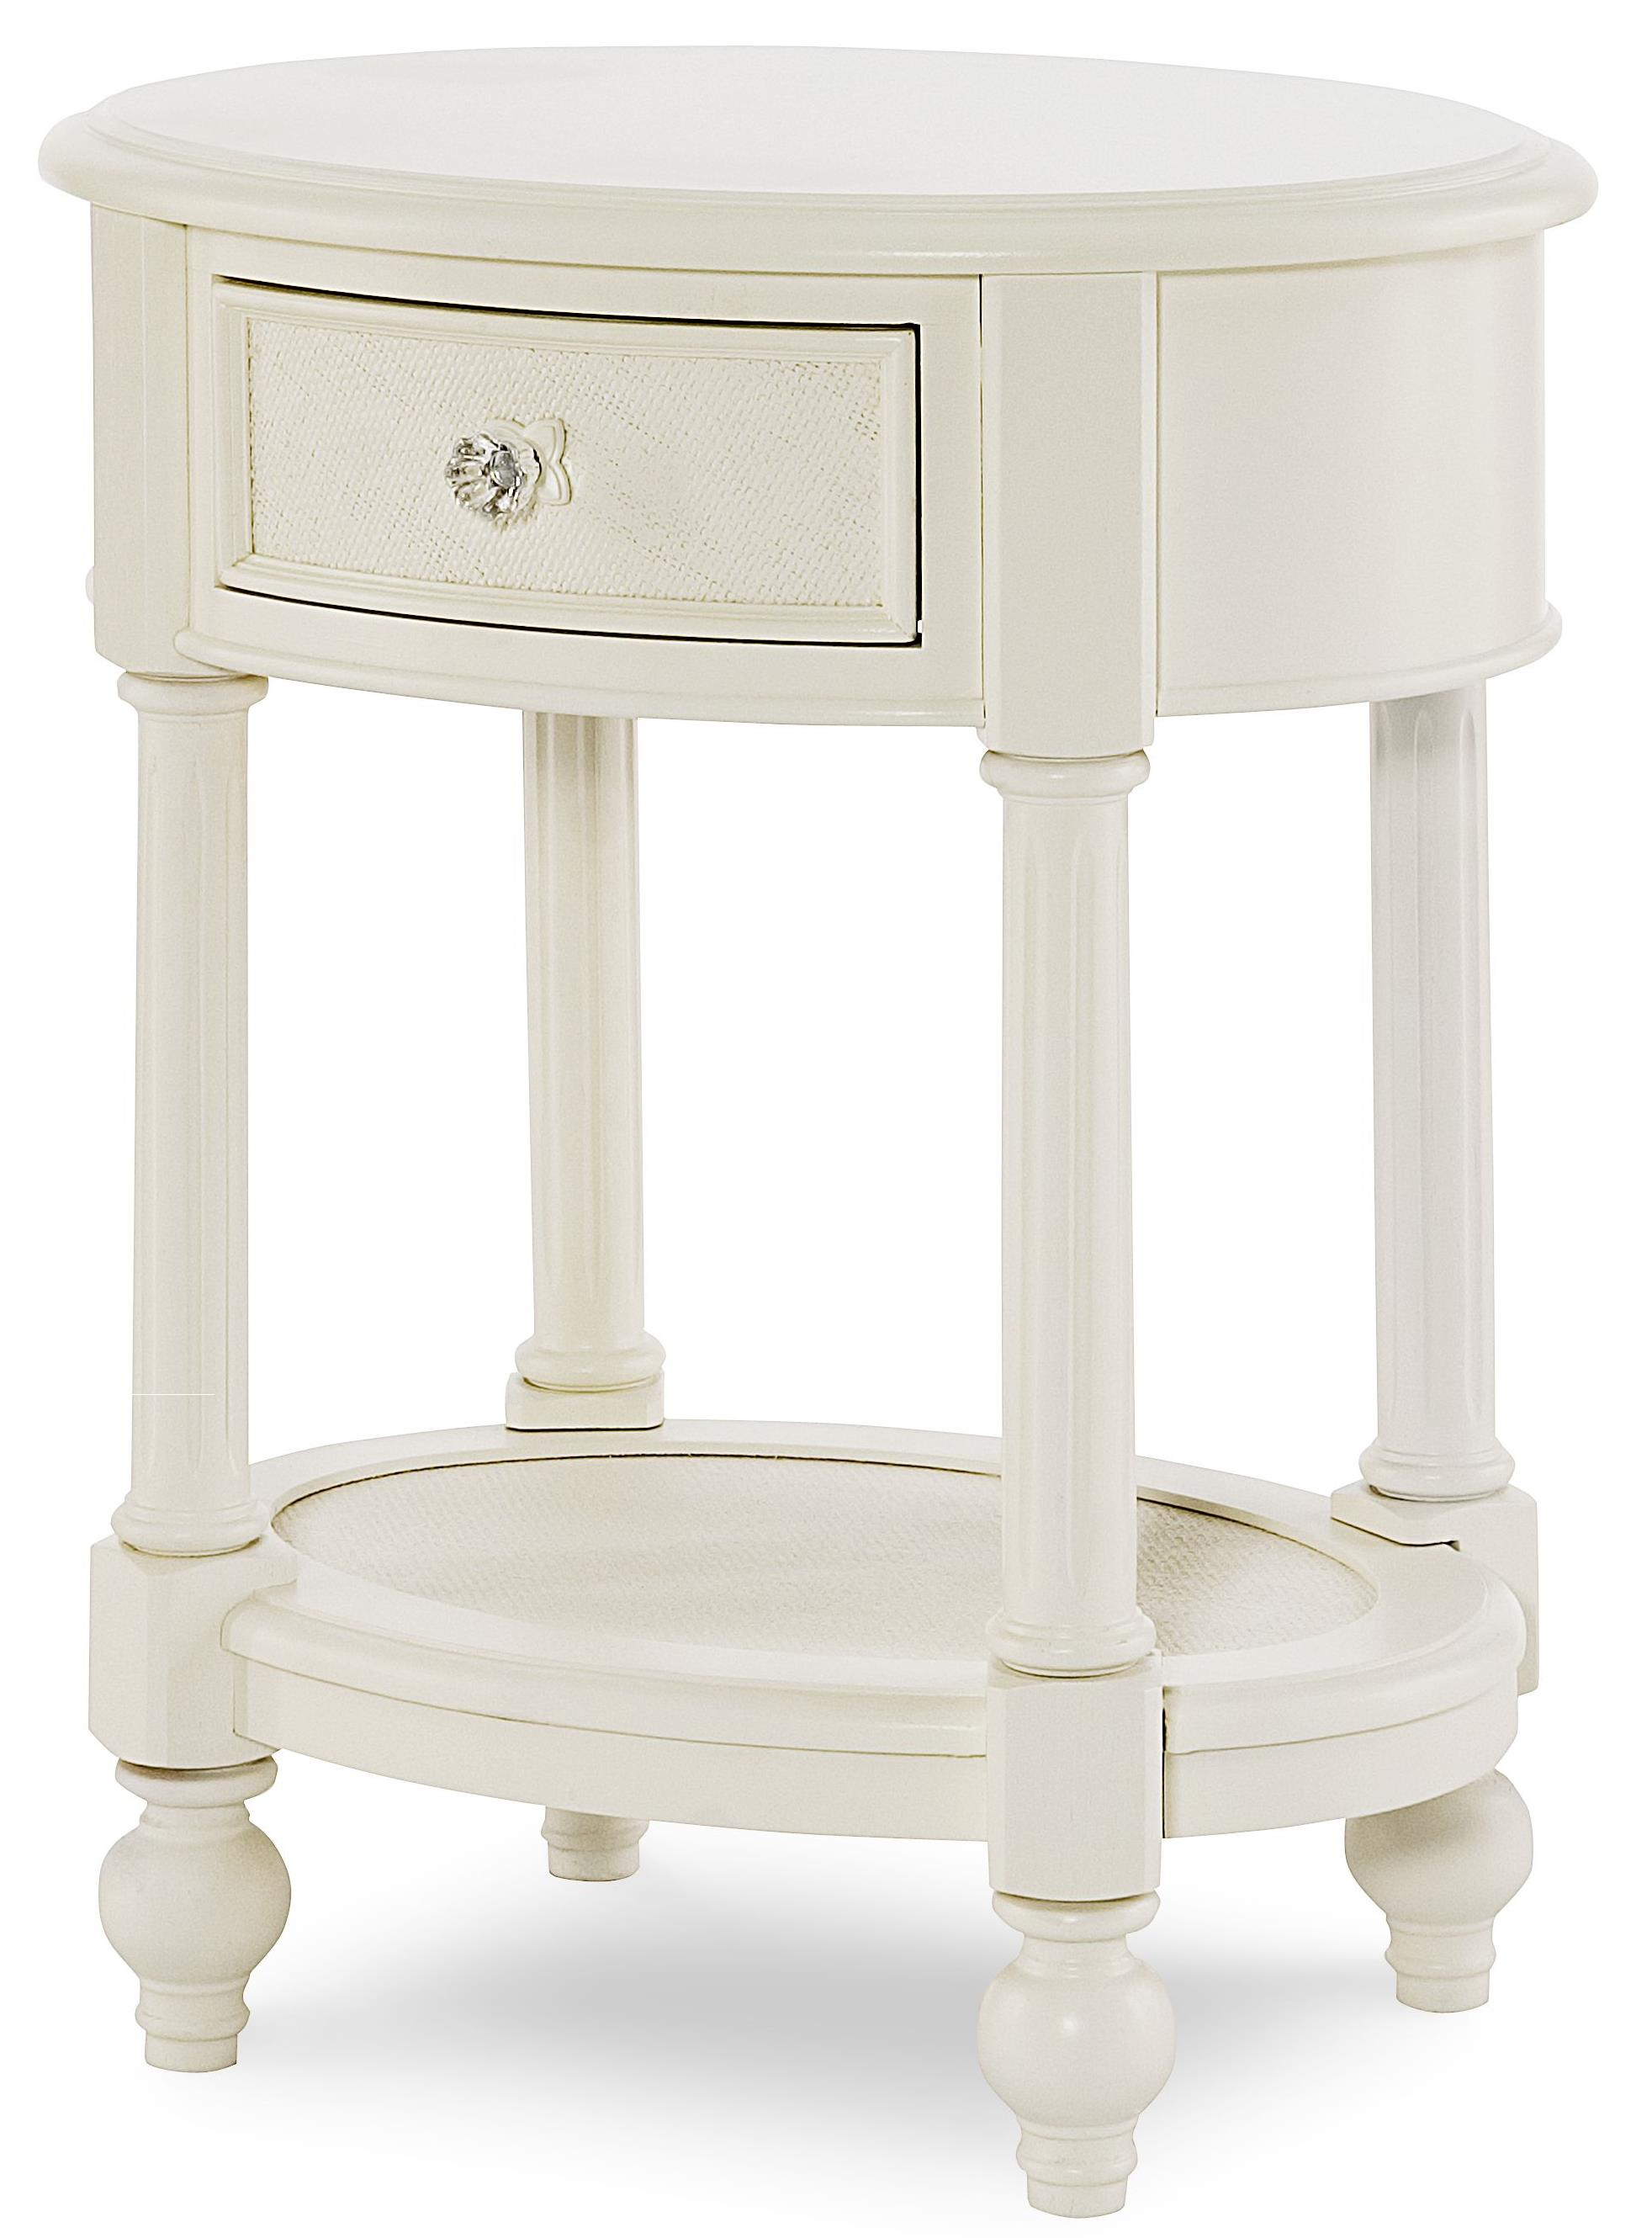 Legacy Classic Kids Harmony Oval Night Stand  - Item Number: 4910-3101